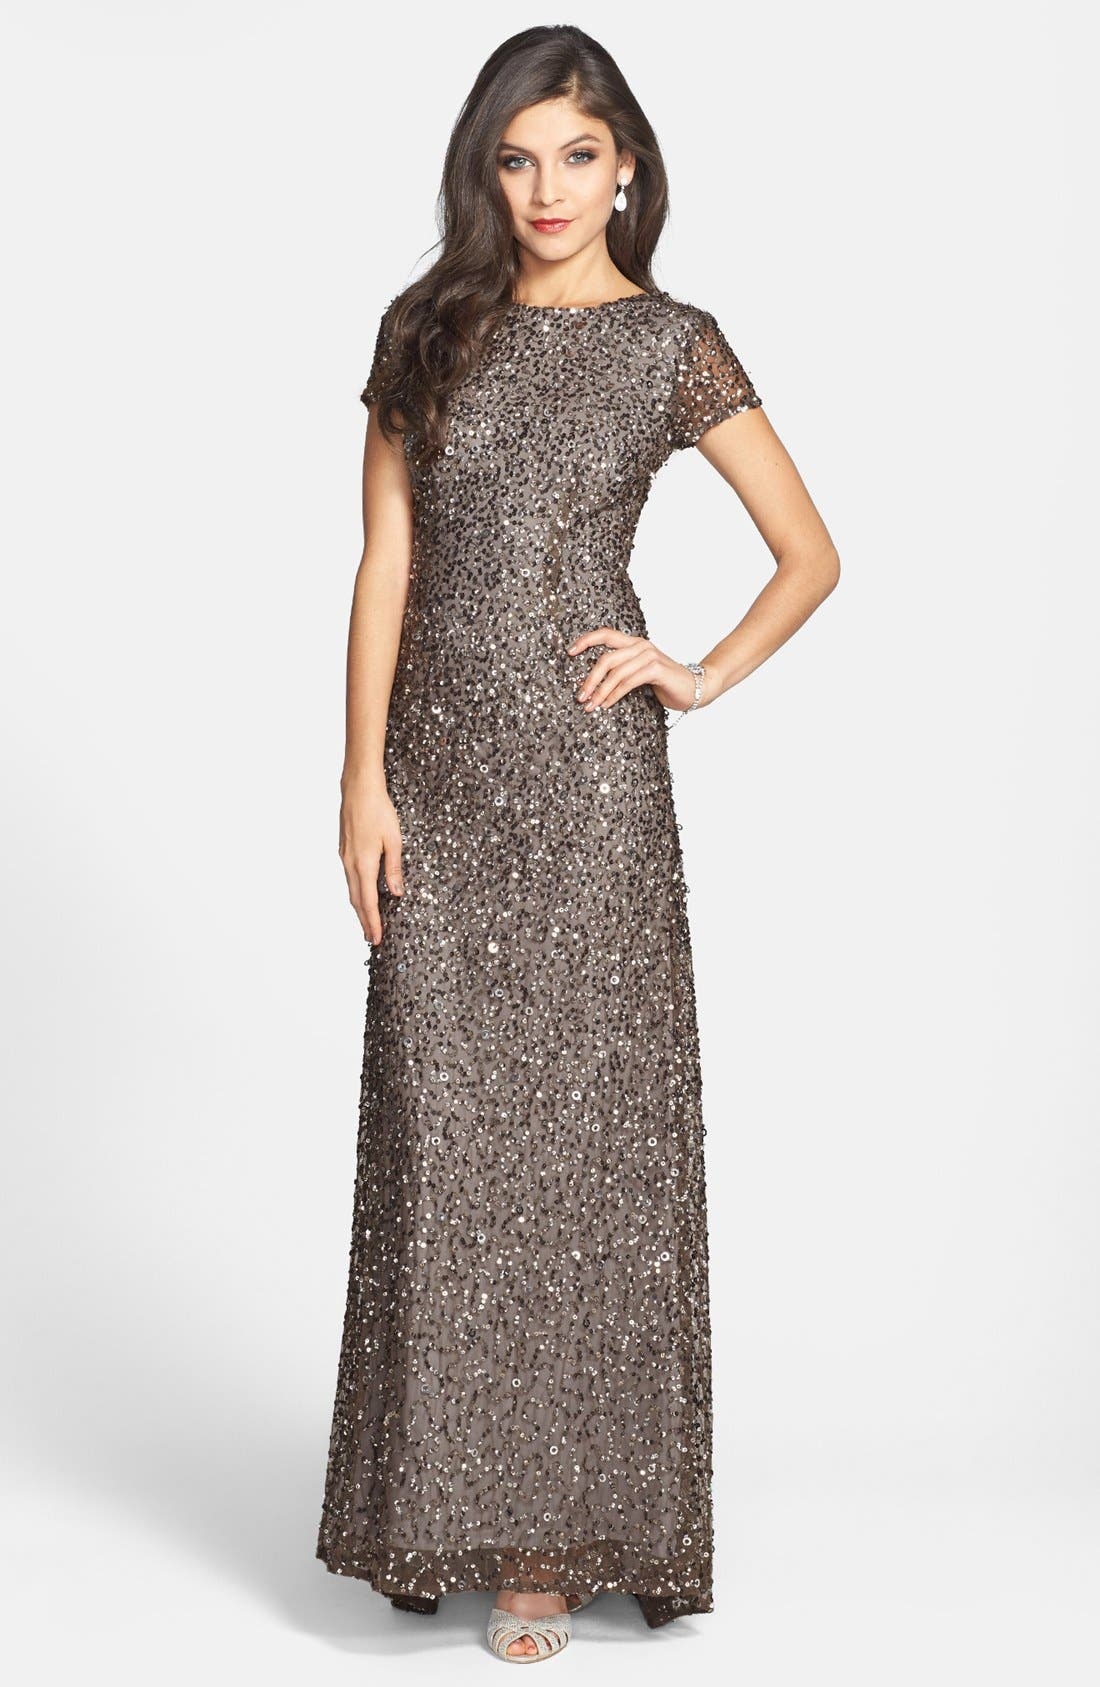 Long Mother-of-the-Bride Dresses: Pleated, Lace & More | Nordstrom ...